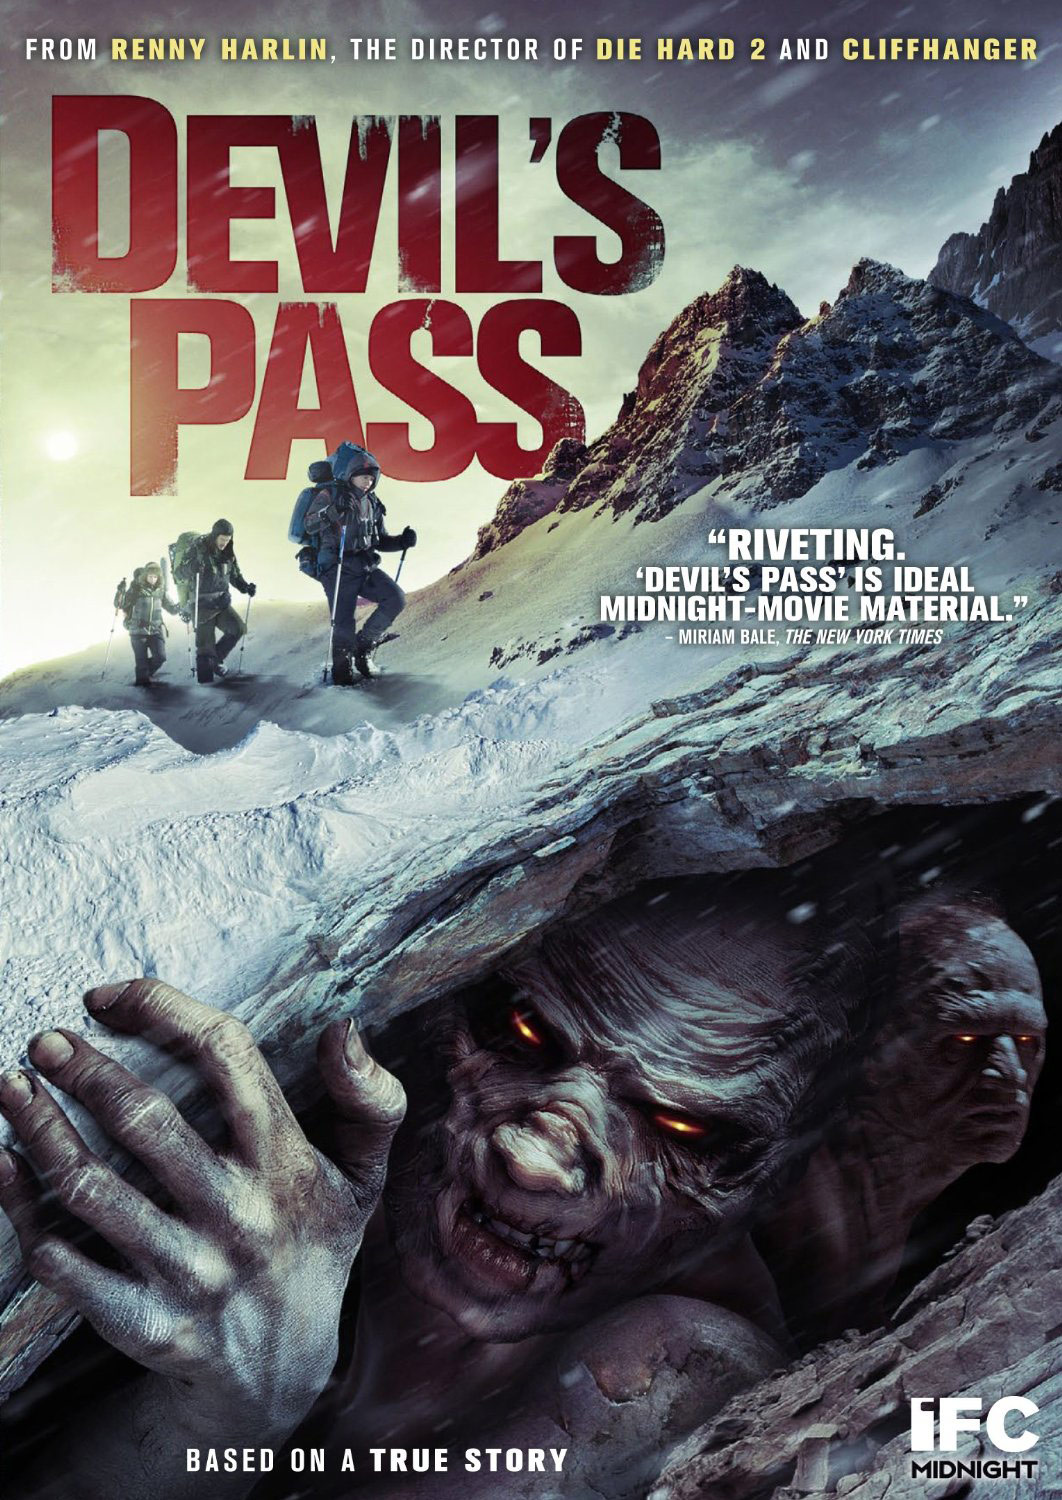 devils-pass-film-images-dvd-cover-art